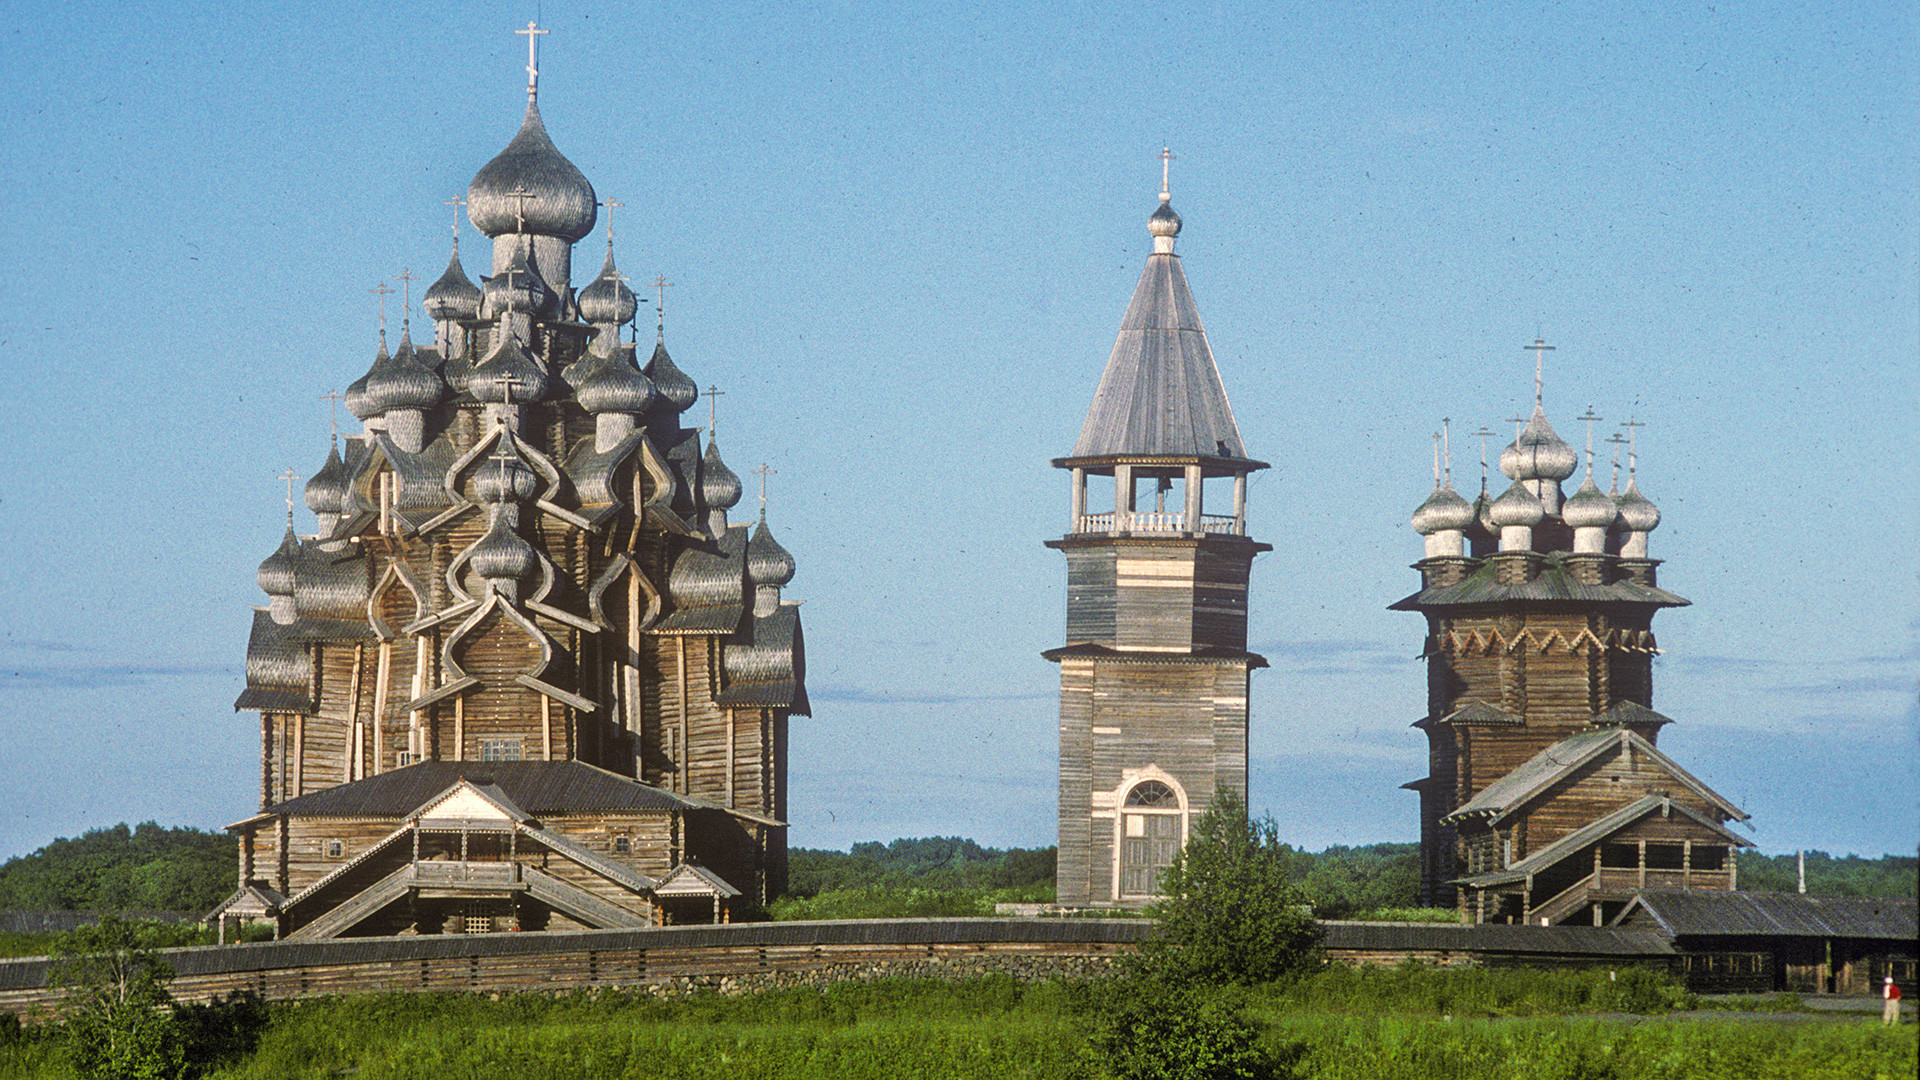 Kizhi Island, church ensemble (pogost). West view from Lake Onega. From left: Church of the Transfiguration, bell tower, Church of the Intercession. July 13, 1993